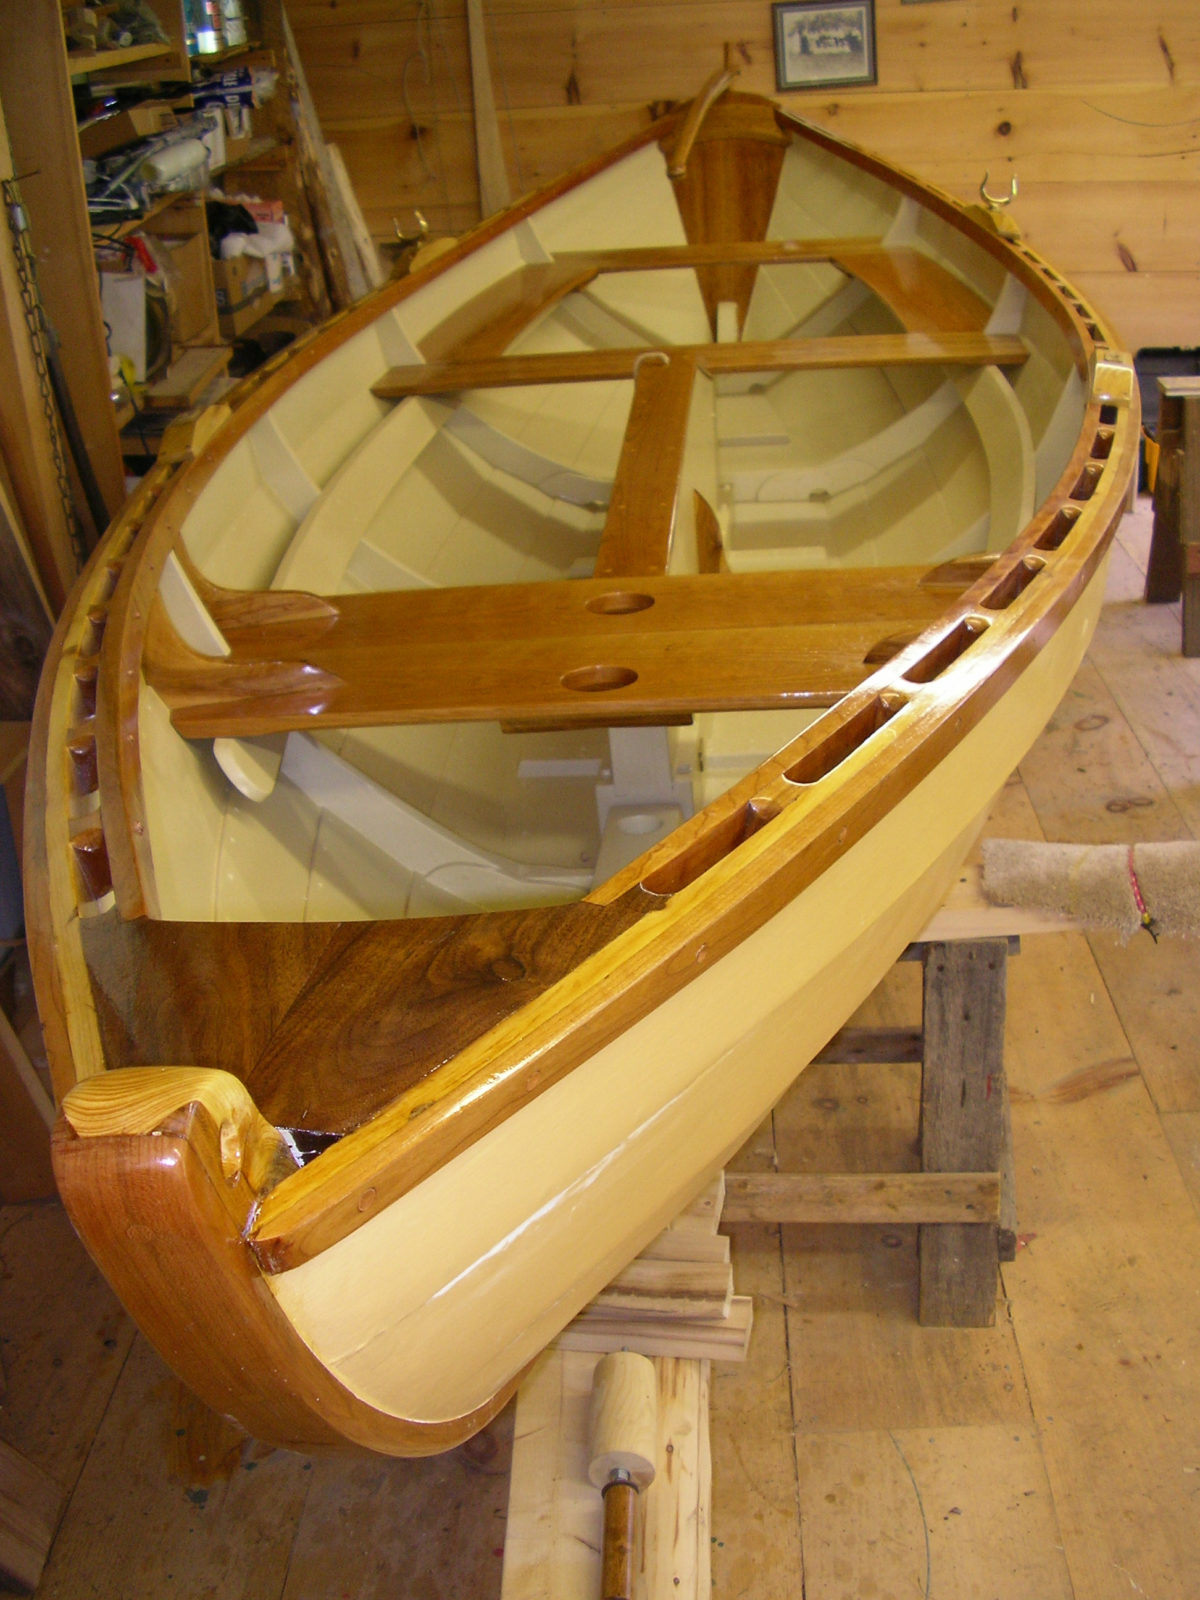 Ready for the water. Gleaming under the varnish is cherry (false stem, thwarts, gunwales), black walnut (Juglans nigra) (breasthook), black locust (Robinia pseudoacacia) (oarlock pads), and apple (knees). Note the two holes at the mast-partners – the mast can be shifted fore or aft depending on the boat load.